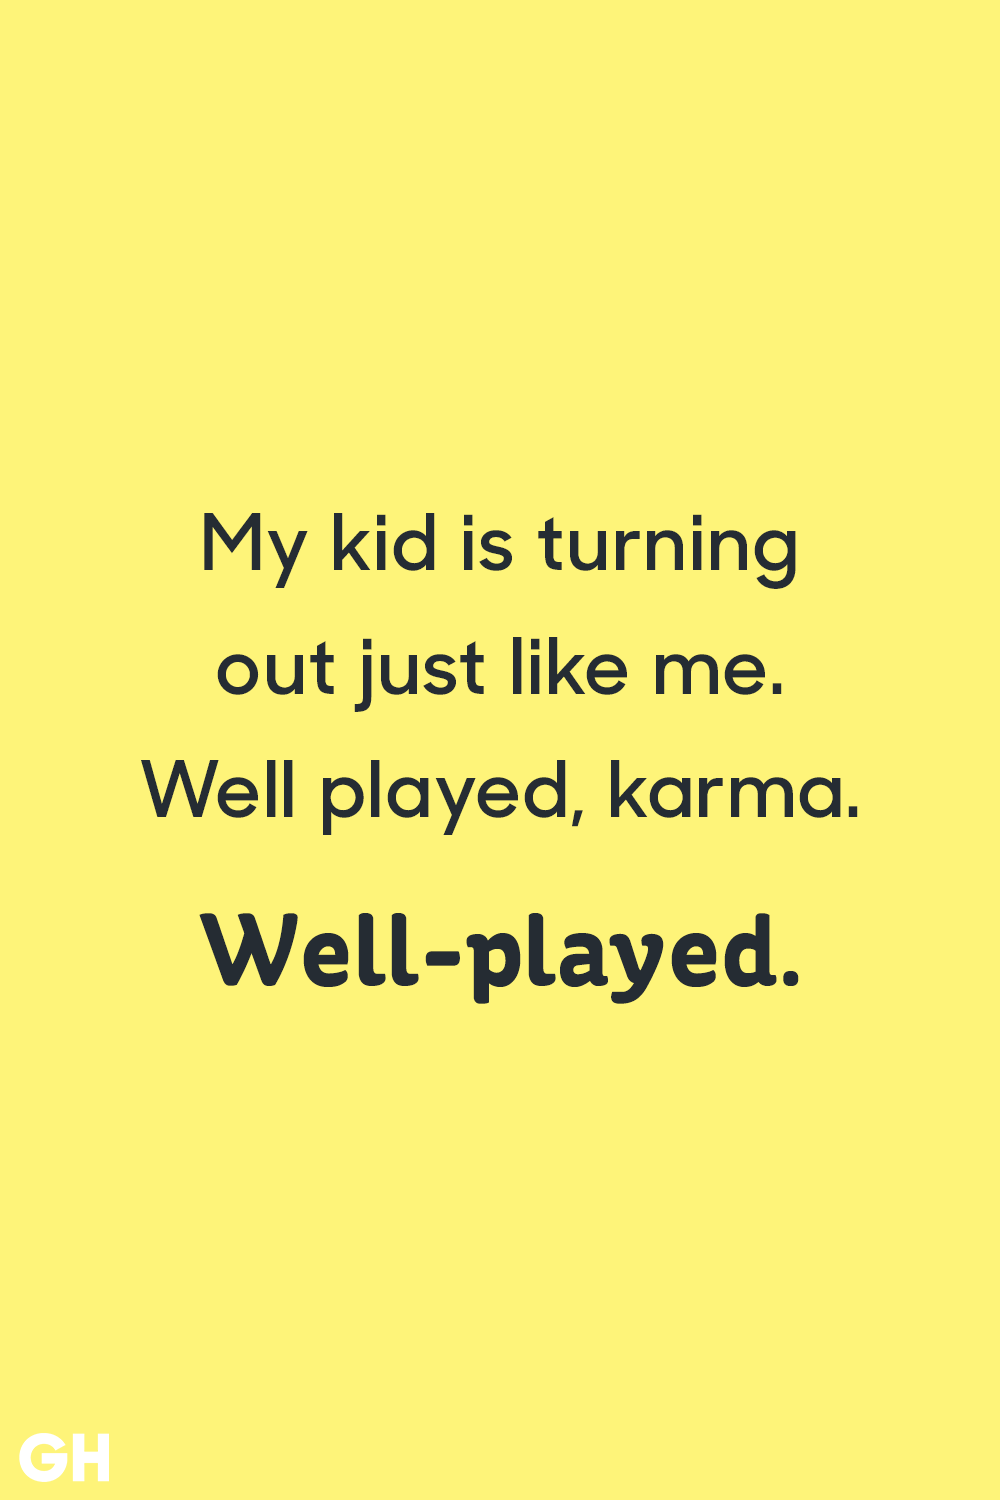 Funny Boy Quotes : funny, quotes, Funny, Parenting, Quotes, Hilarious, About, Being, Parent